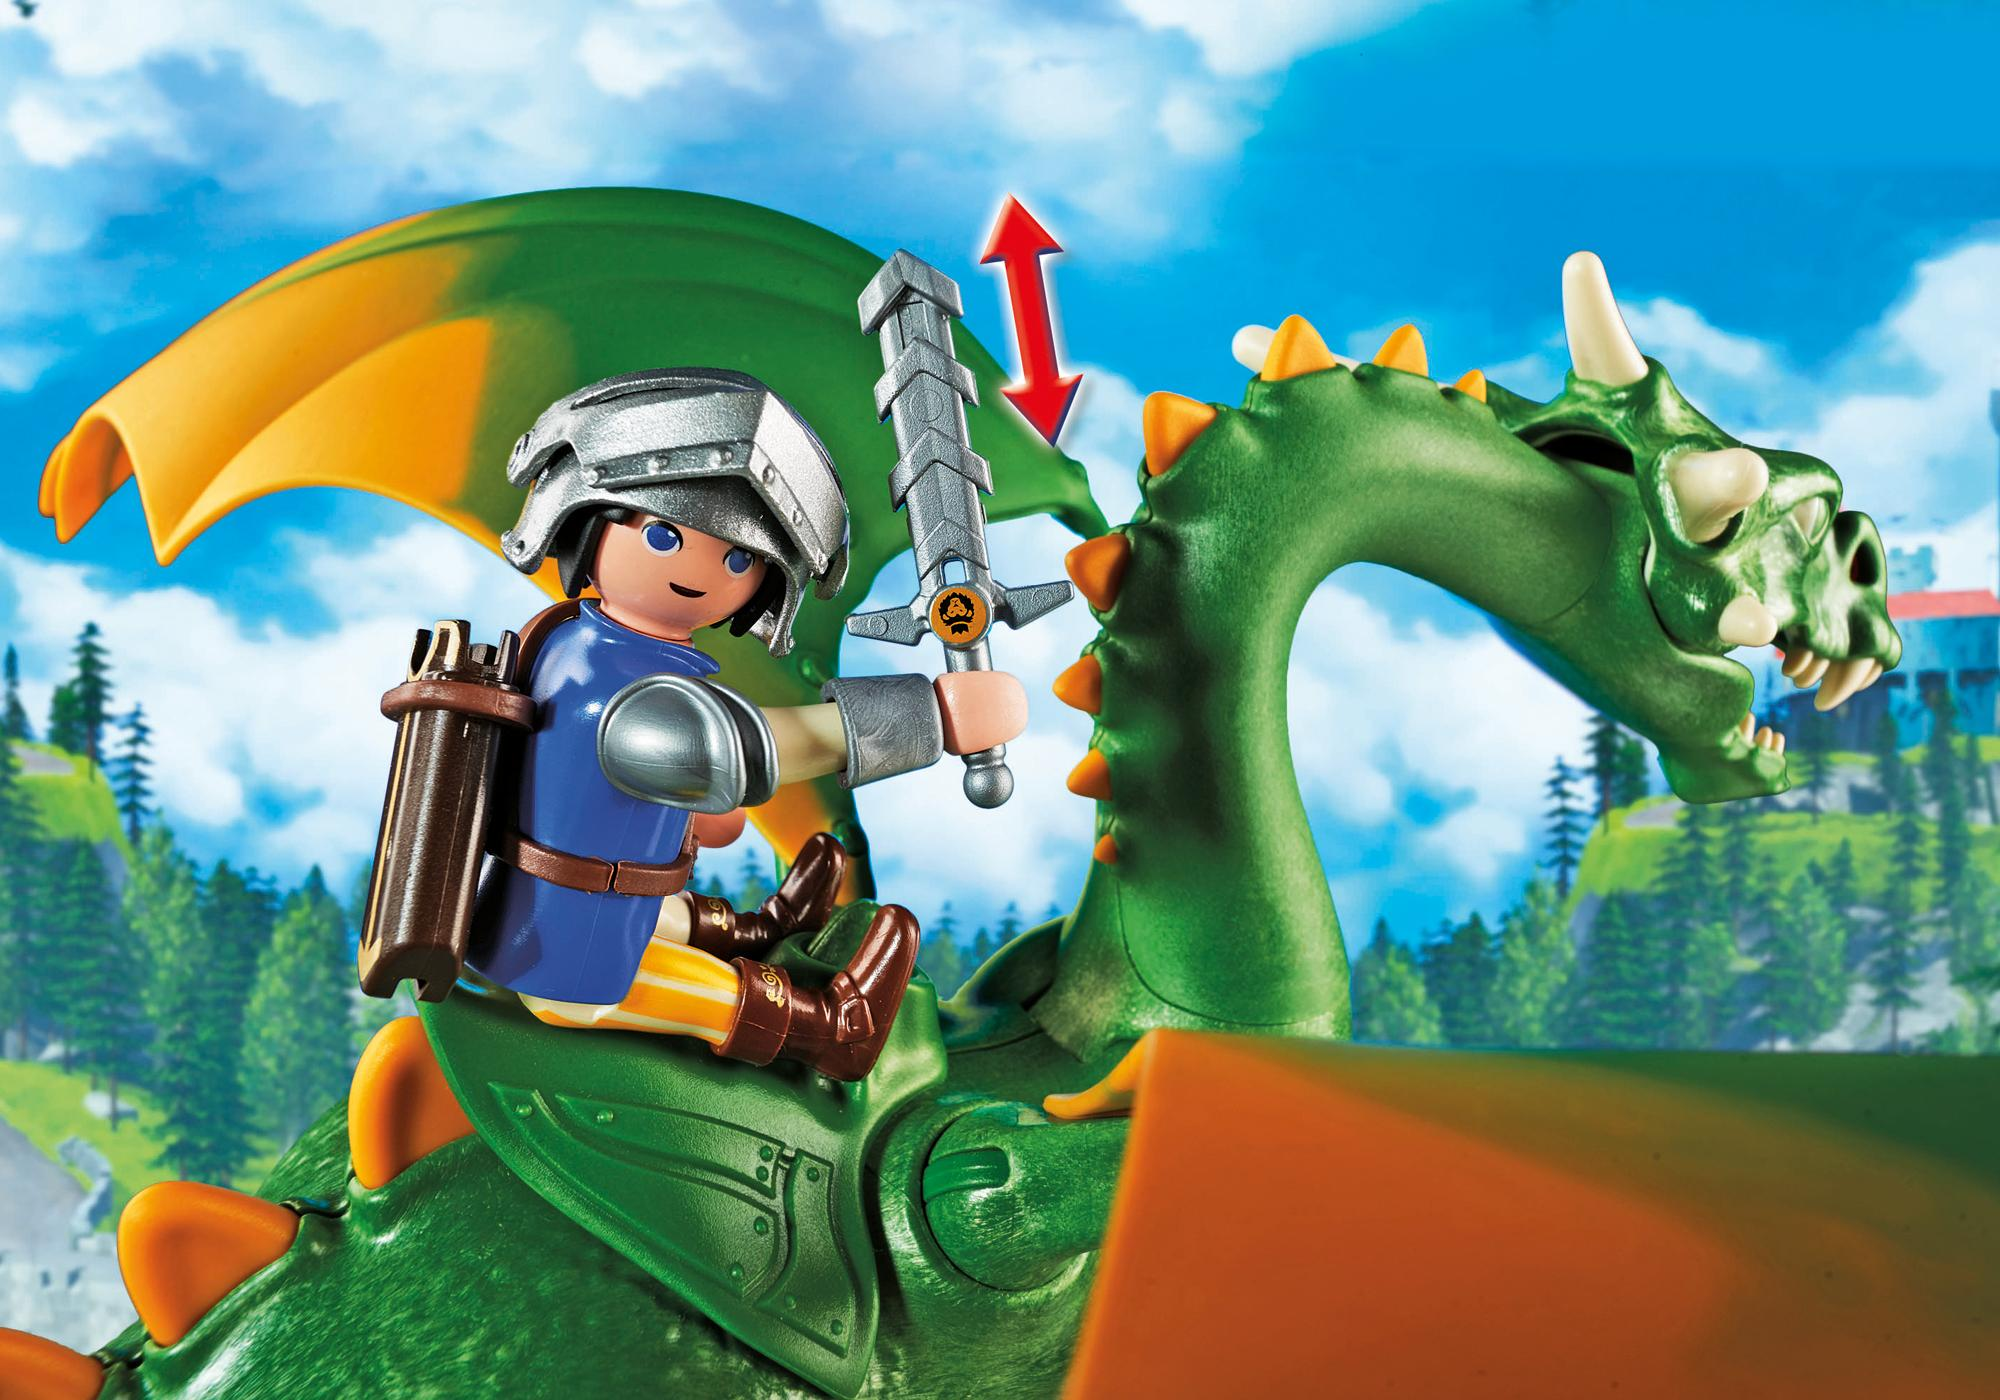 http://media.playmobil.com/i/playmobil/9001_product_extra1